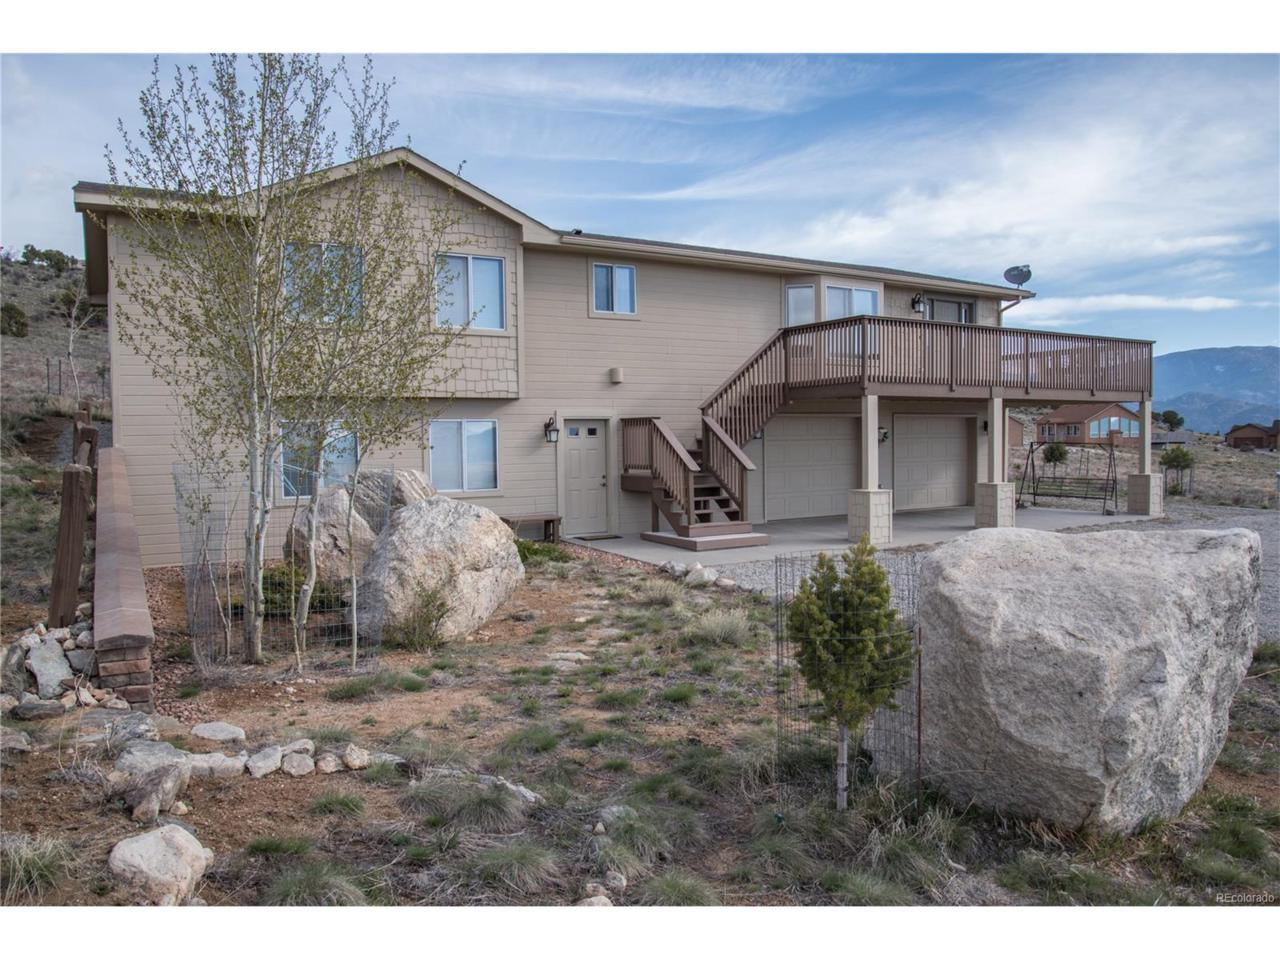 30503 Valley View Drive, Buena Vista, CO 81211 (MLS #8180433) :: 8z Real Estate